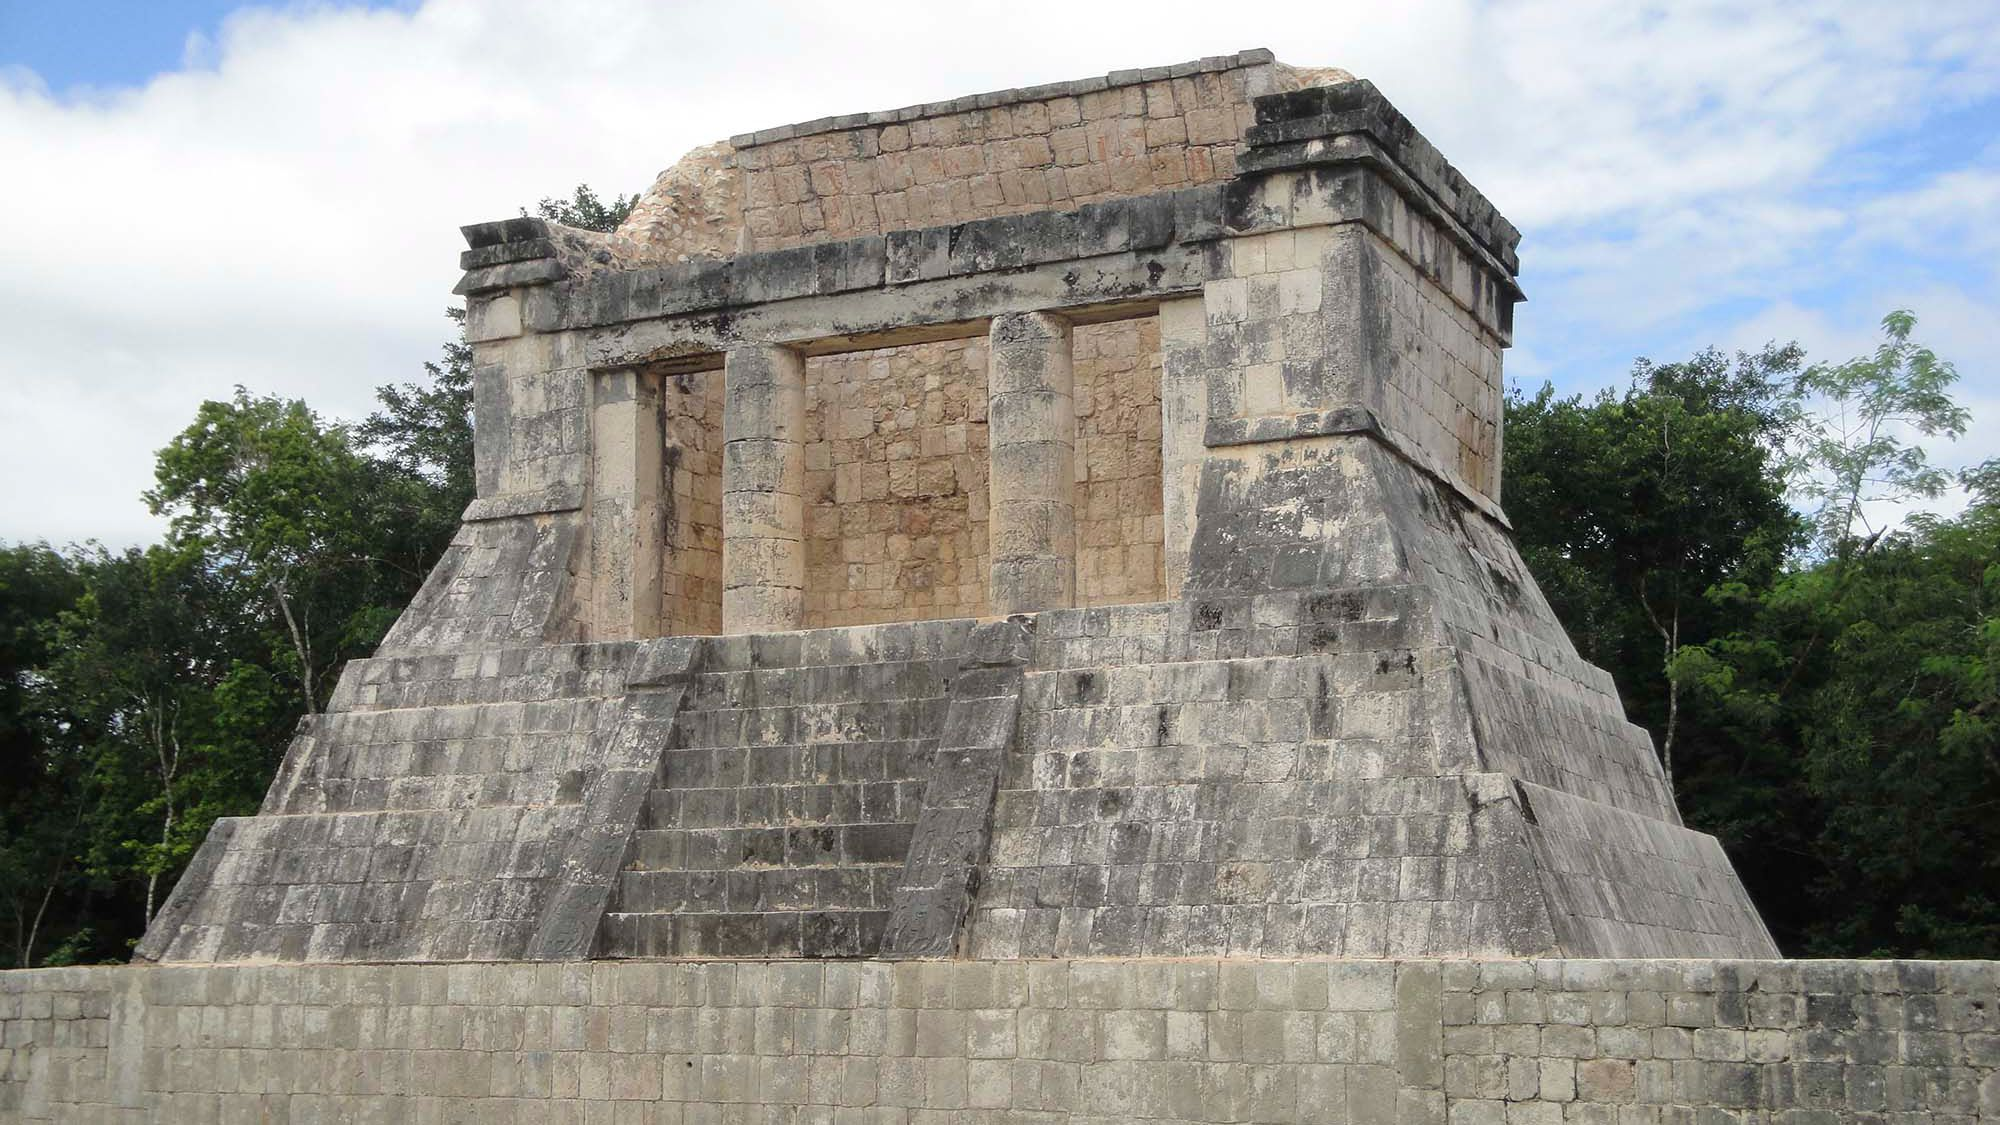 Top of a temple at the Chichen Itza ruins